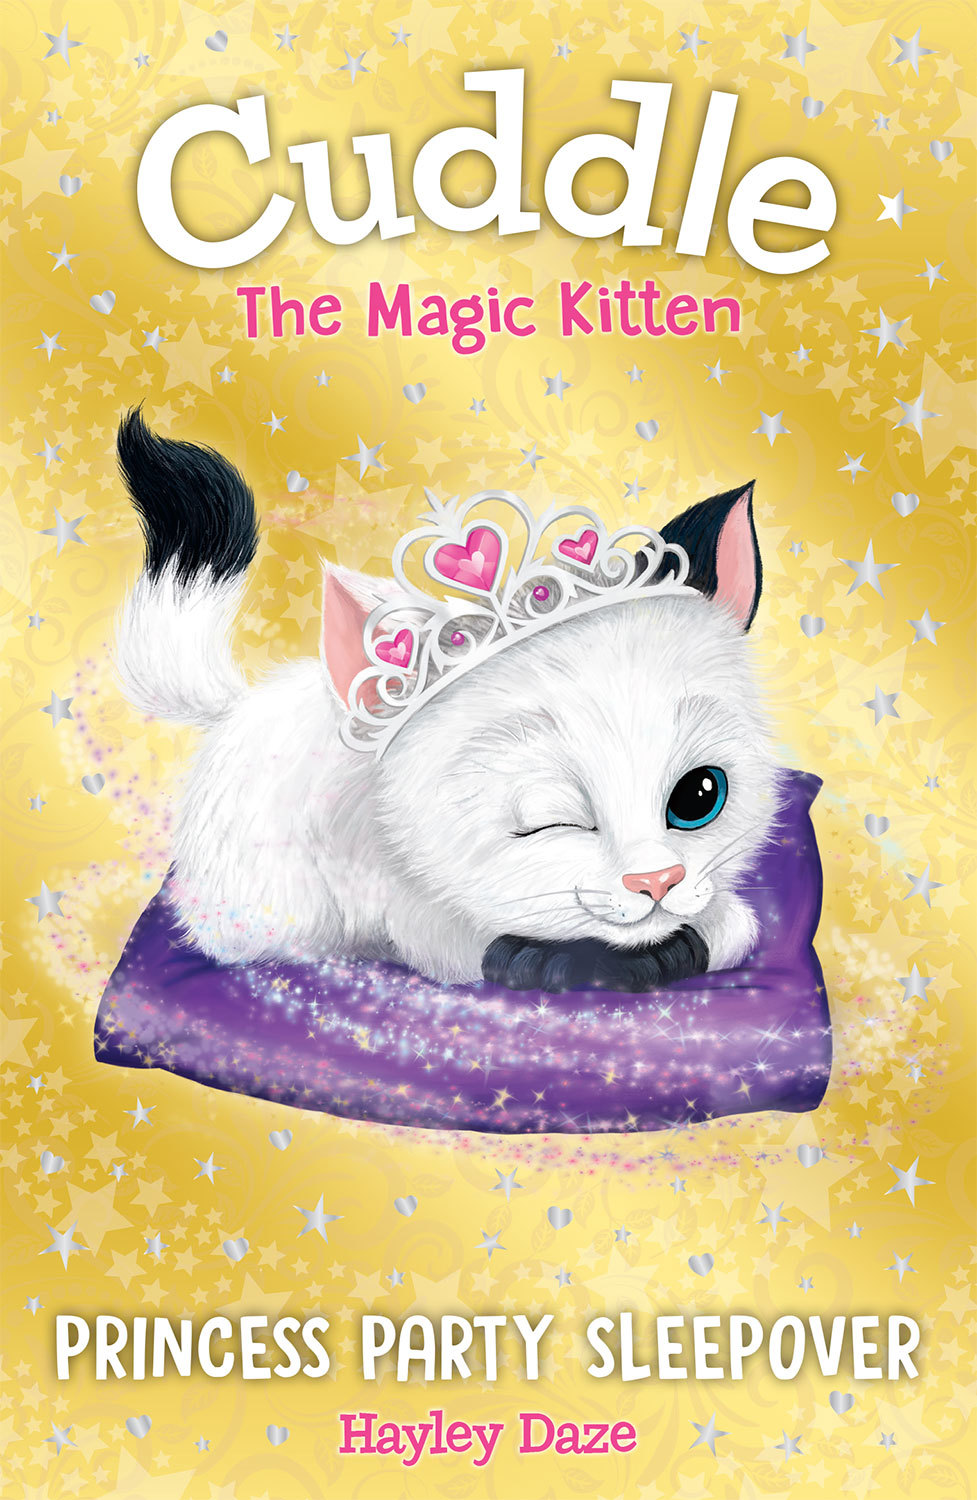 Cuddle the Magic Kitten Book 3: Princess Party Sleepover